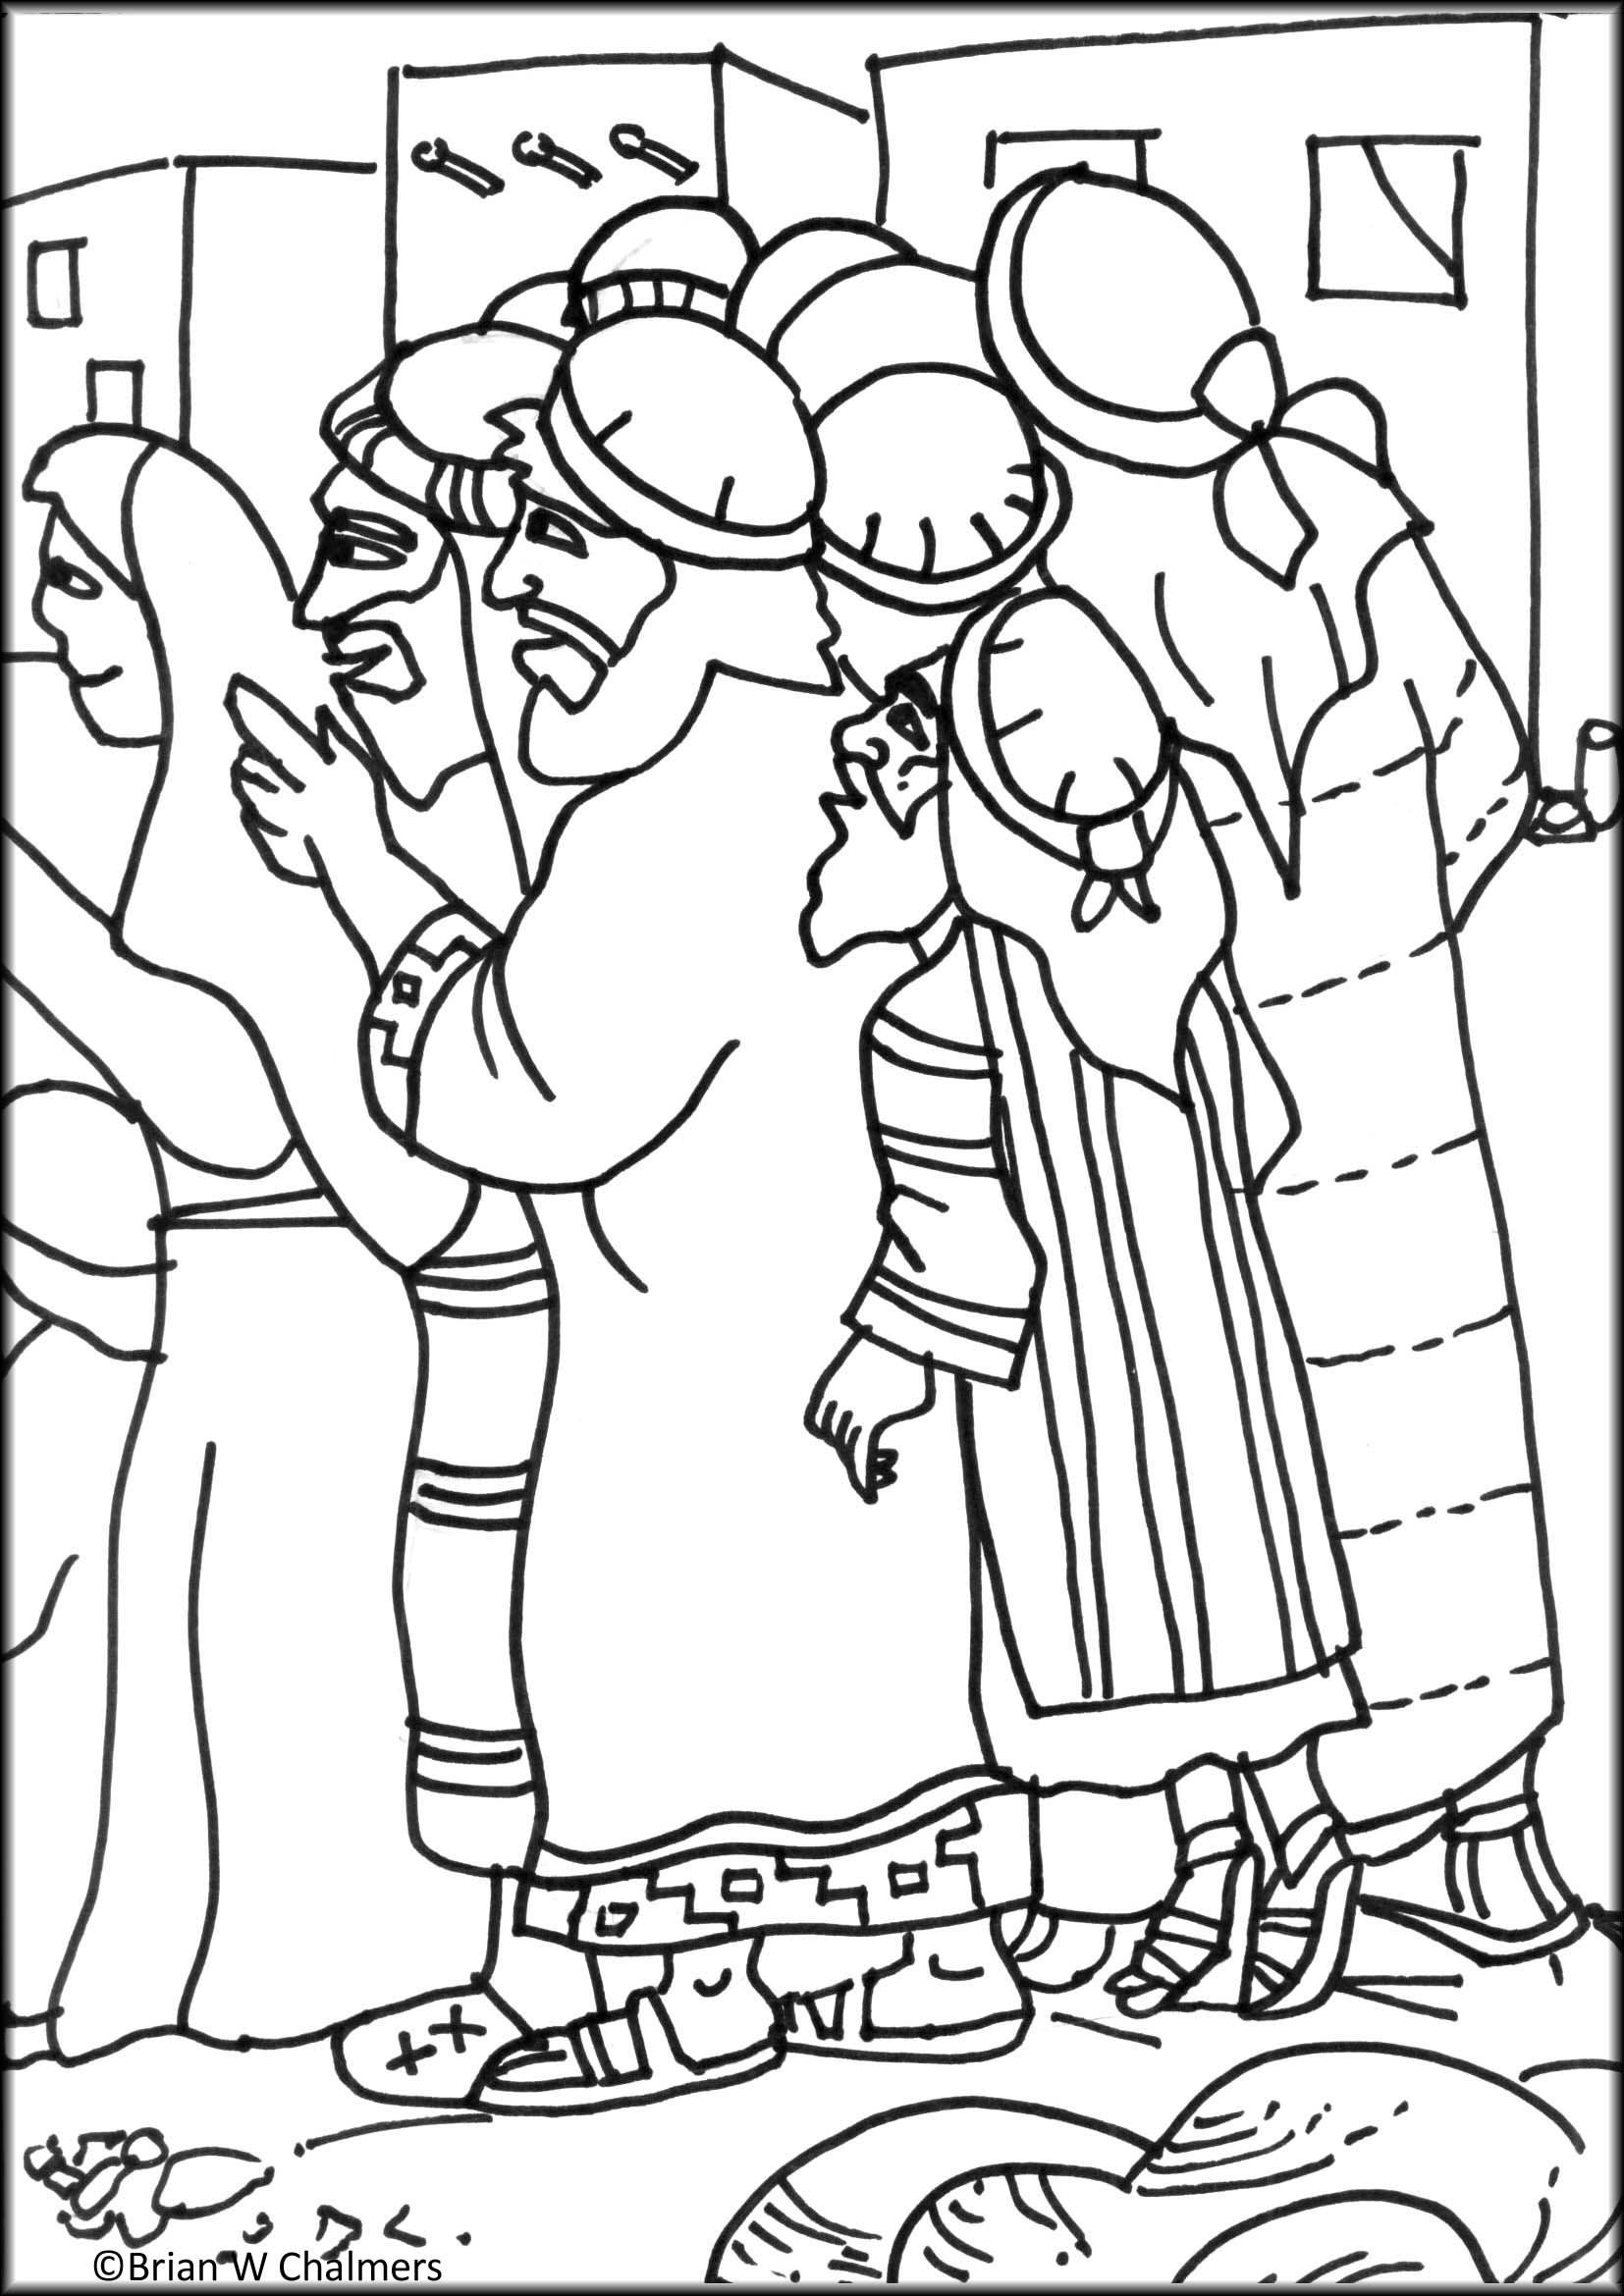 Childrens bible stories and coloring pages - Zaccheus Coloring Page Zacchaeuschildren Ministryvbs 2016bible Craftsbible Storiesbible